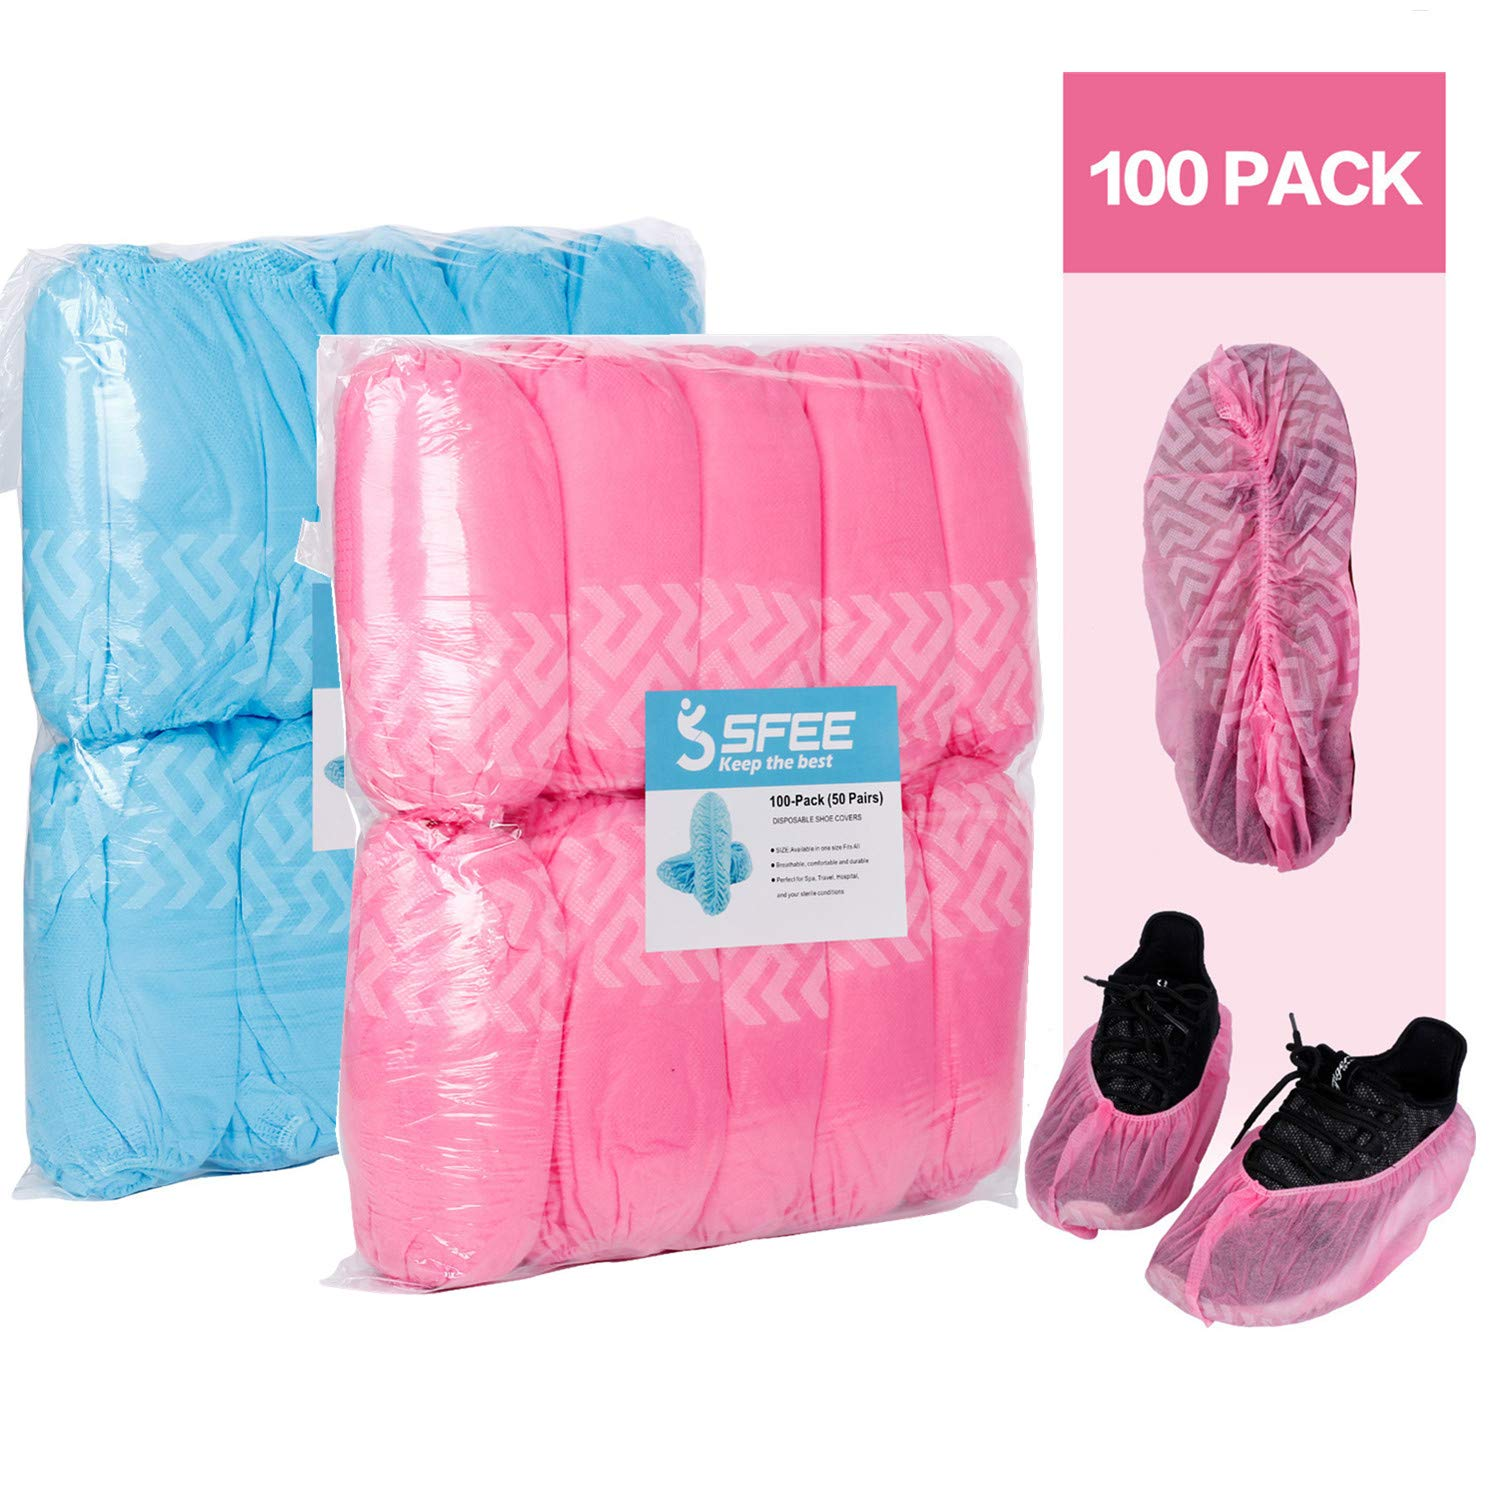 Sfee 100 Pack Shoe Covers-Disposable Hygienic, Non Slip, Durable,Water Resistance, Recyclable,Boot&Shoes Cover for Medical,Construction,Offices,Indoor Floor Carpet Protection,One Size Fits All(Pink)